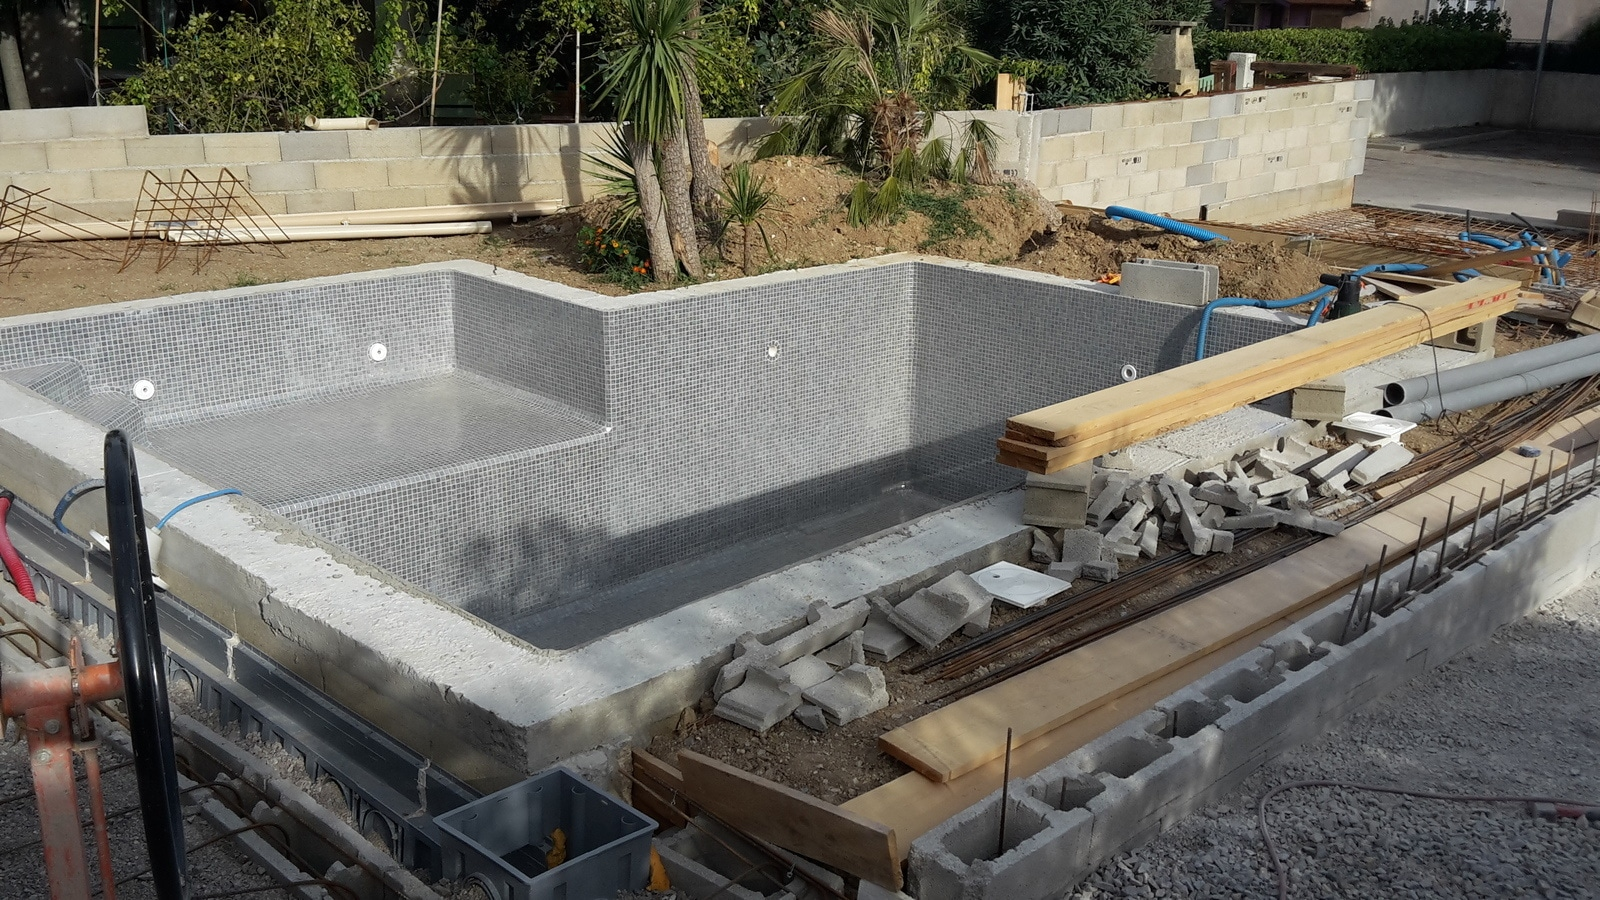 Comment construire une piscine les tapes constructives for Construire sa piscine en beton